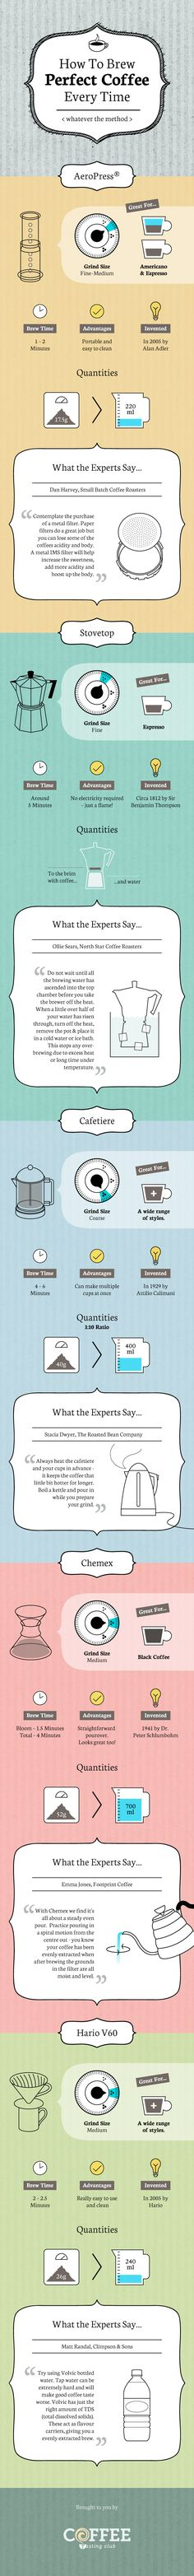 There are a number of options for making a great tasting cup of joe, but those options can differ quite a bit. This infographic runs down the basics and helps you pick the best method, depending on your preferences.